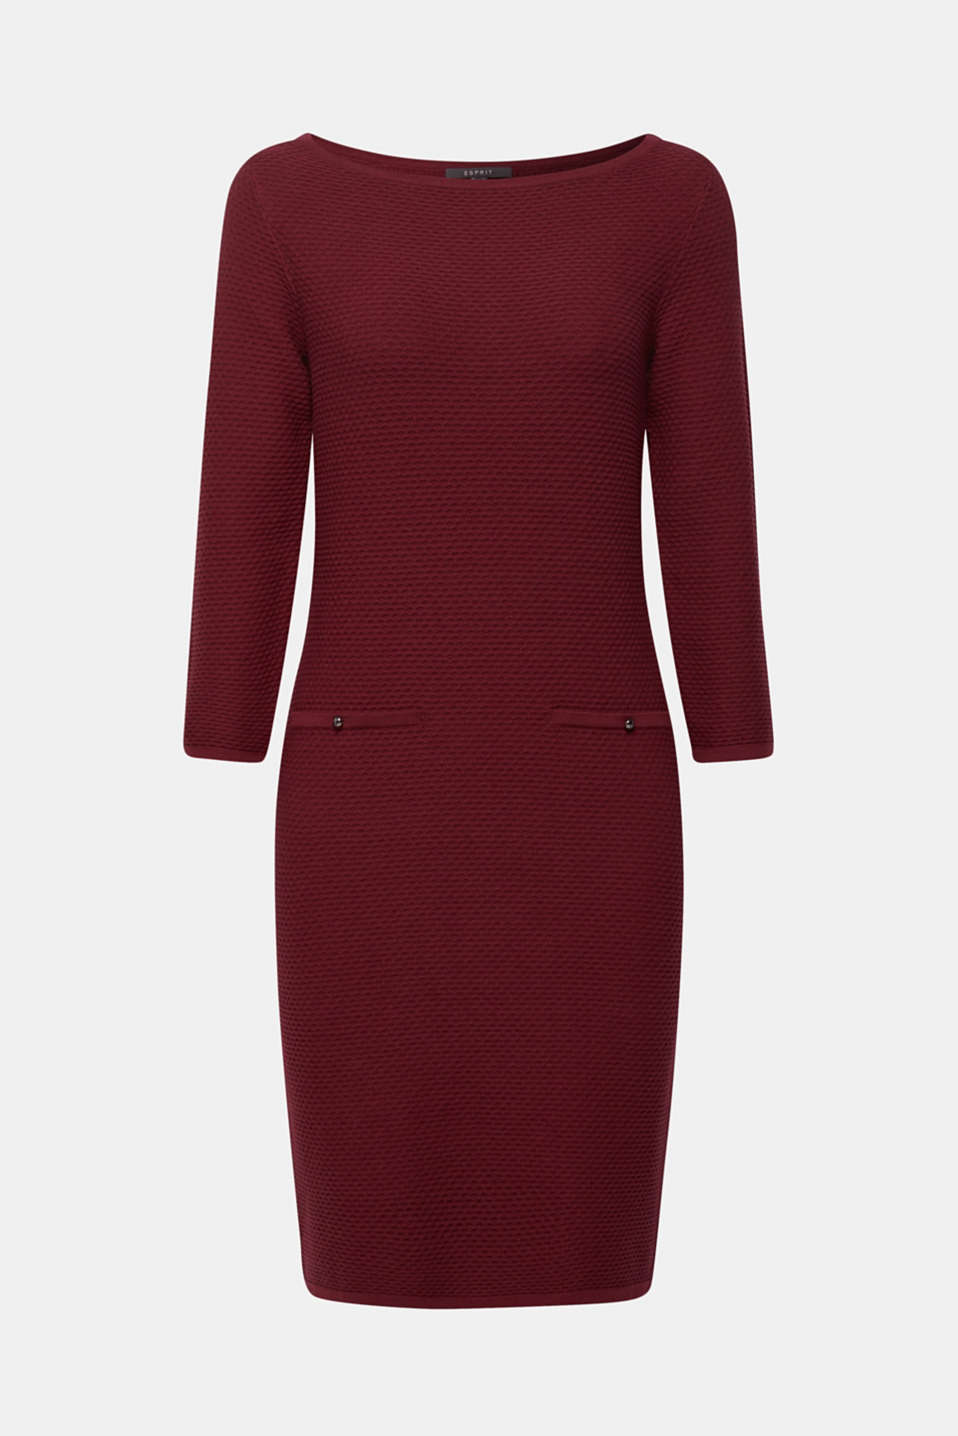 Textured knitted dress with decorative buttons, GARNET RED, detail image number 6